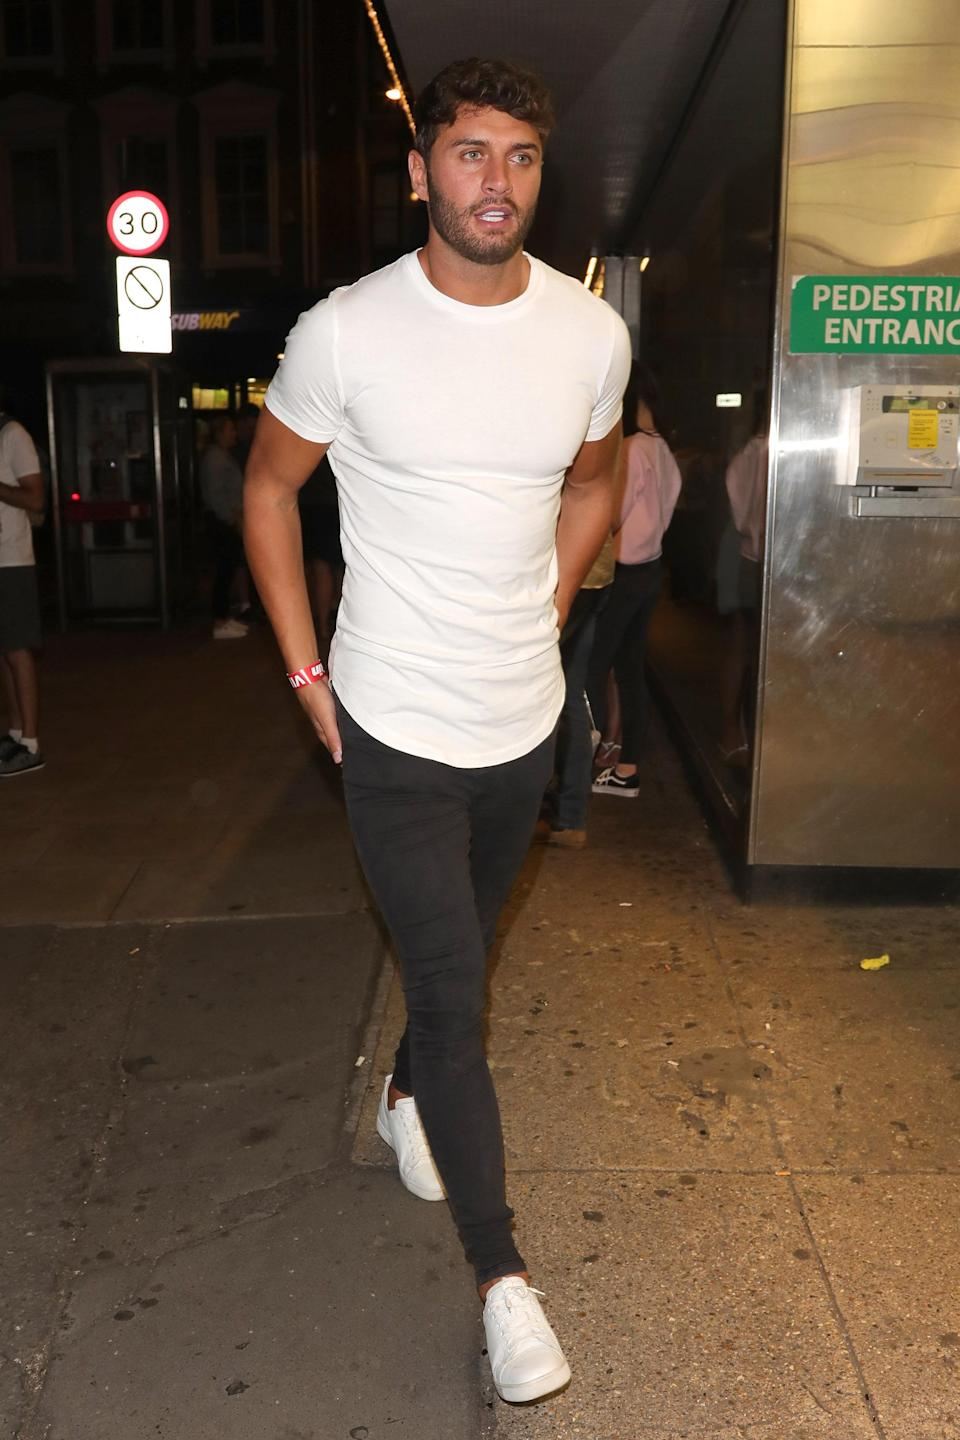 LONDON, ENGLAND – JULY 30: Mike Thallasitis attending The Sun's Love Island 2018 finale viewing party at Covent Garden's Tropicana sighting on July 30, 2018 in London, England. (Photo by Mark R. Milan/GC Images)